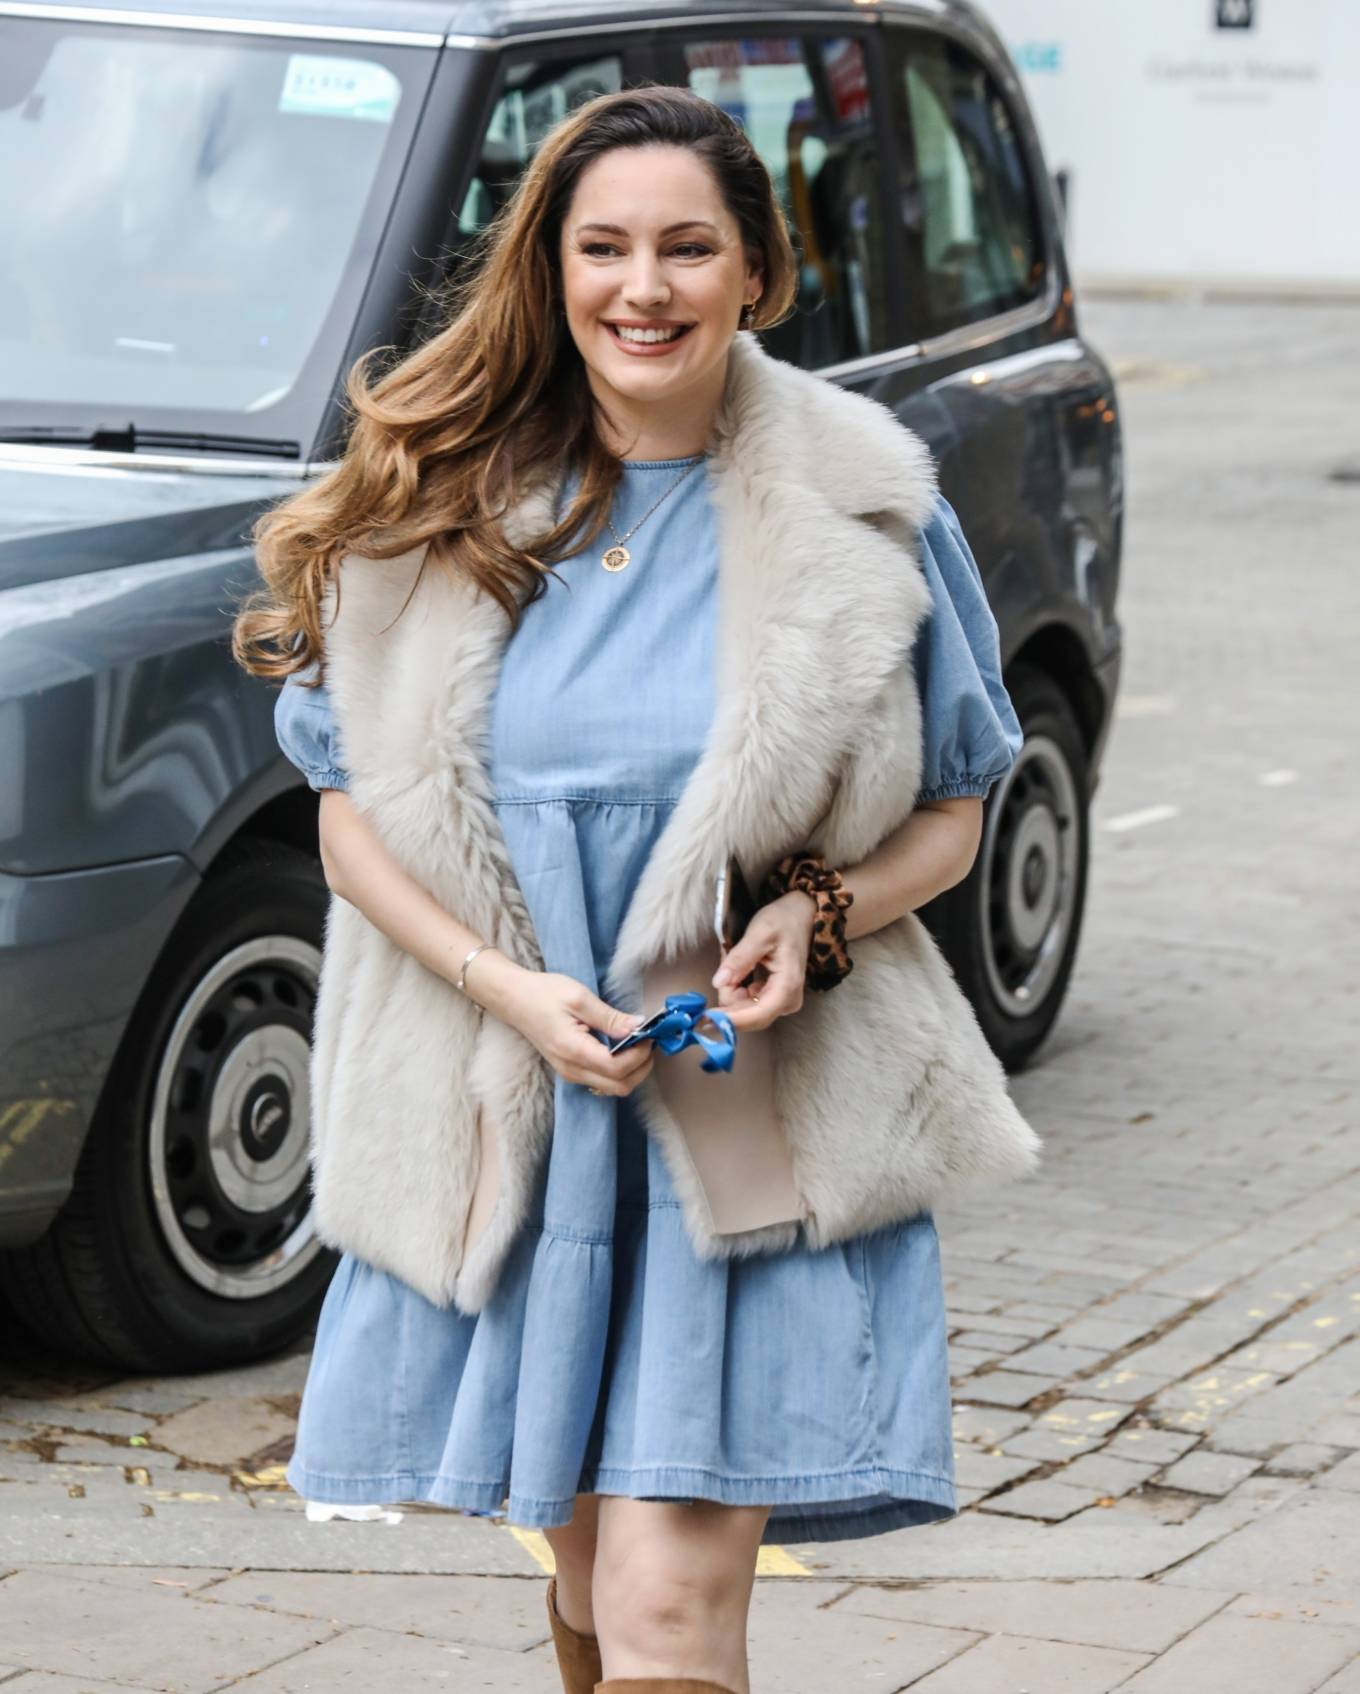 Kelly Brook - In a sky blue dress arriving for her Heart FM show at the Global Radio Studios